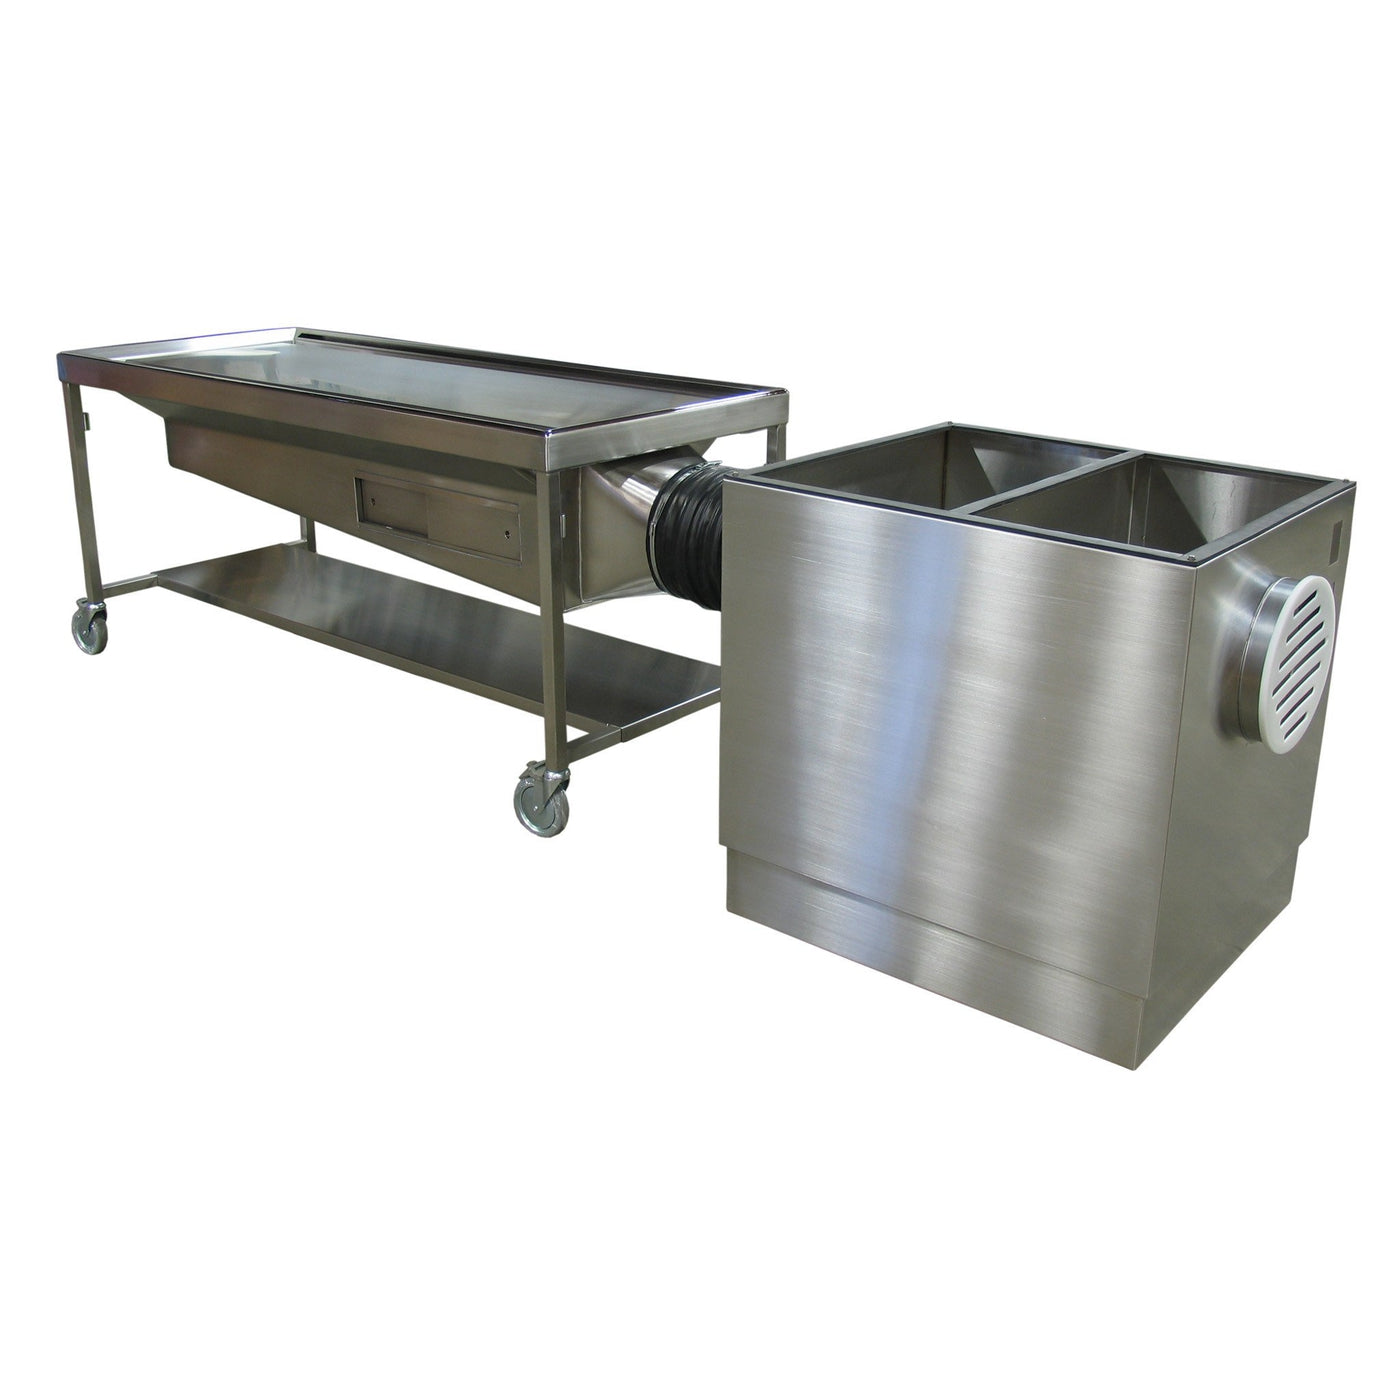 Custom Dissection Table-Custom Product-Mortech Manufacturing Company Inc. Quality Stainless Steel Autopsy, Morgue, Funeral Home, Necropsy, Veterinary / Anatomy, Dissection Equipment and Accessories